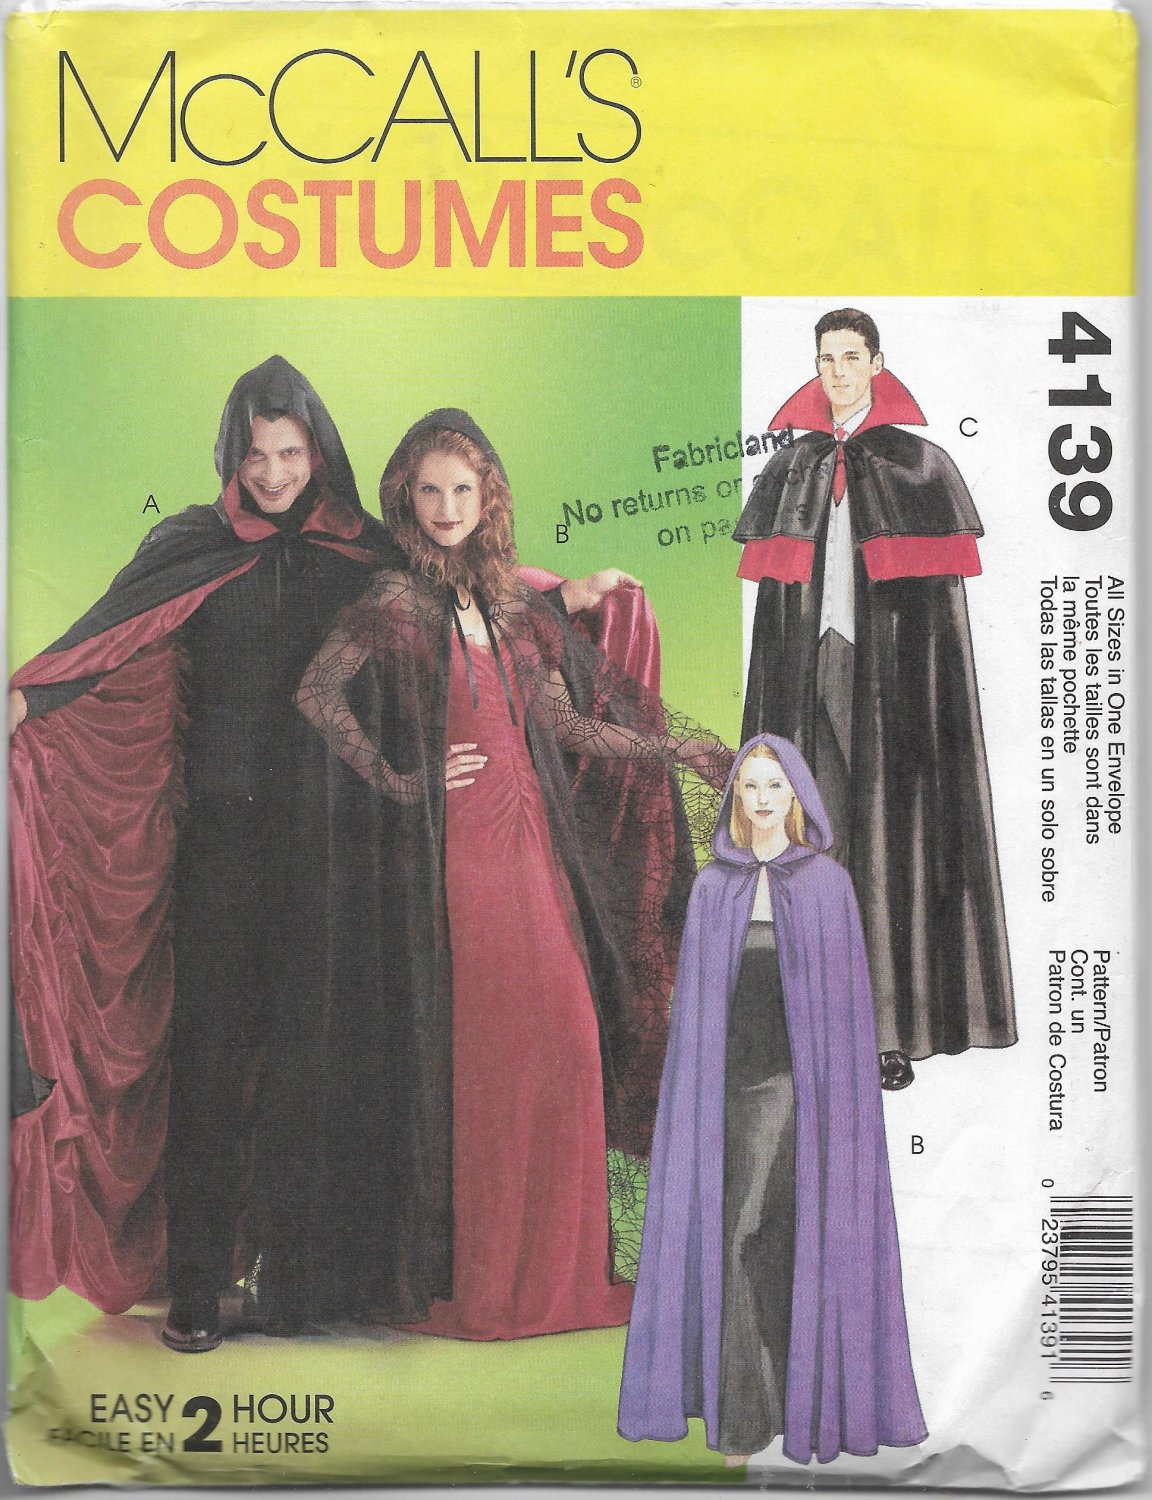 McCalls Costume Capes Unisex Line or Unlined Sizes Small to X Large all in one Sewing Pattern